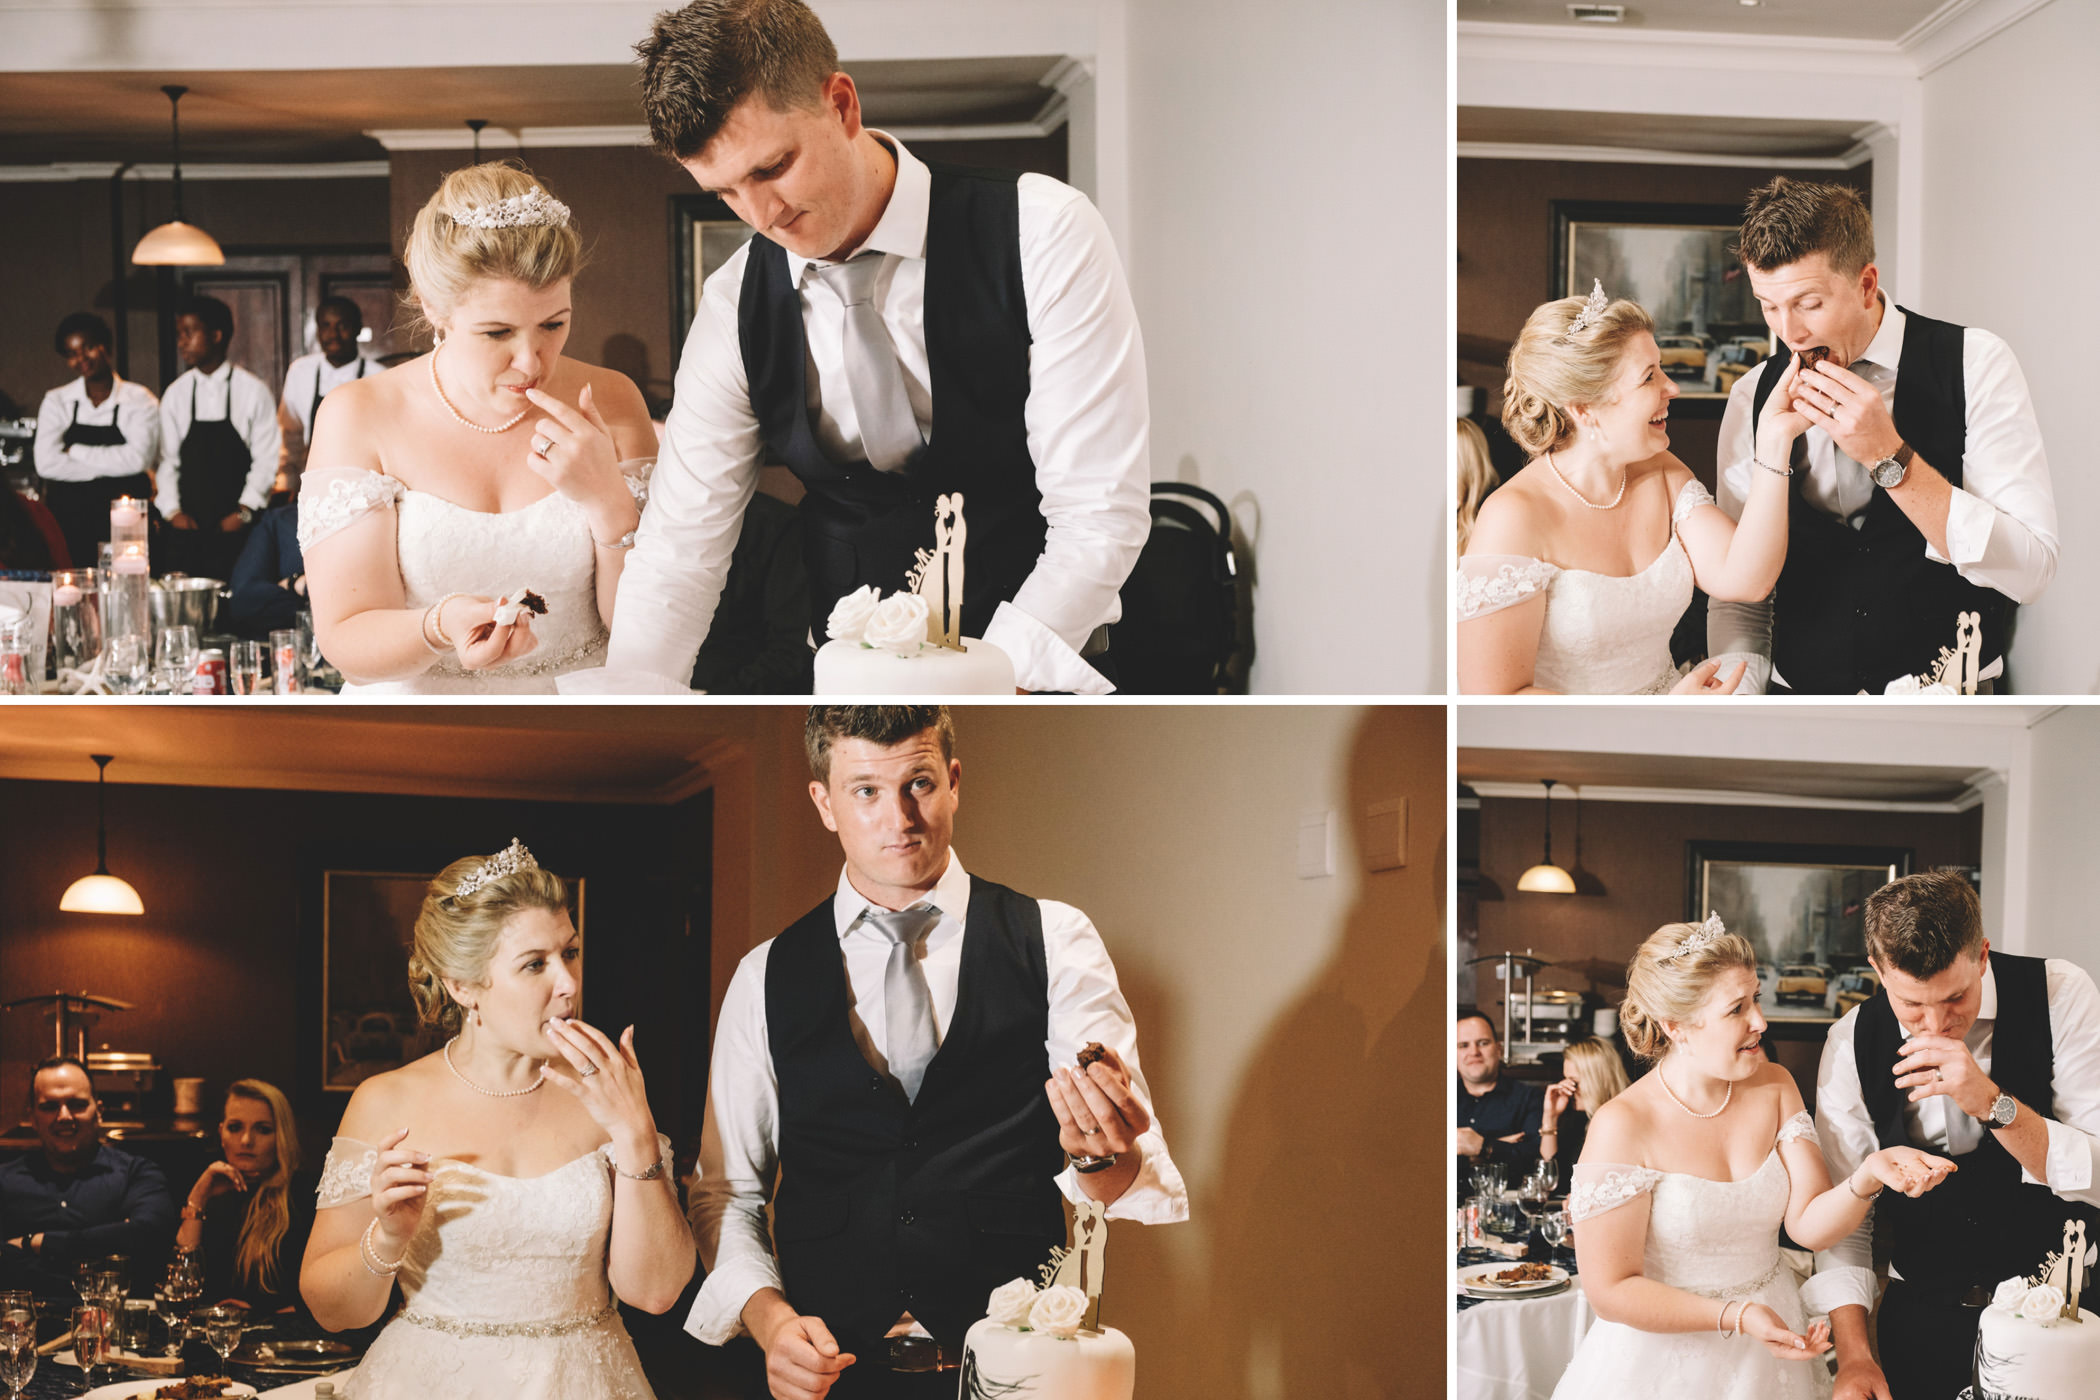 Mount Edgecombe Wedding Photography RBadal golf course bride and groom cutting cake